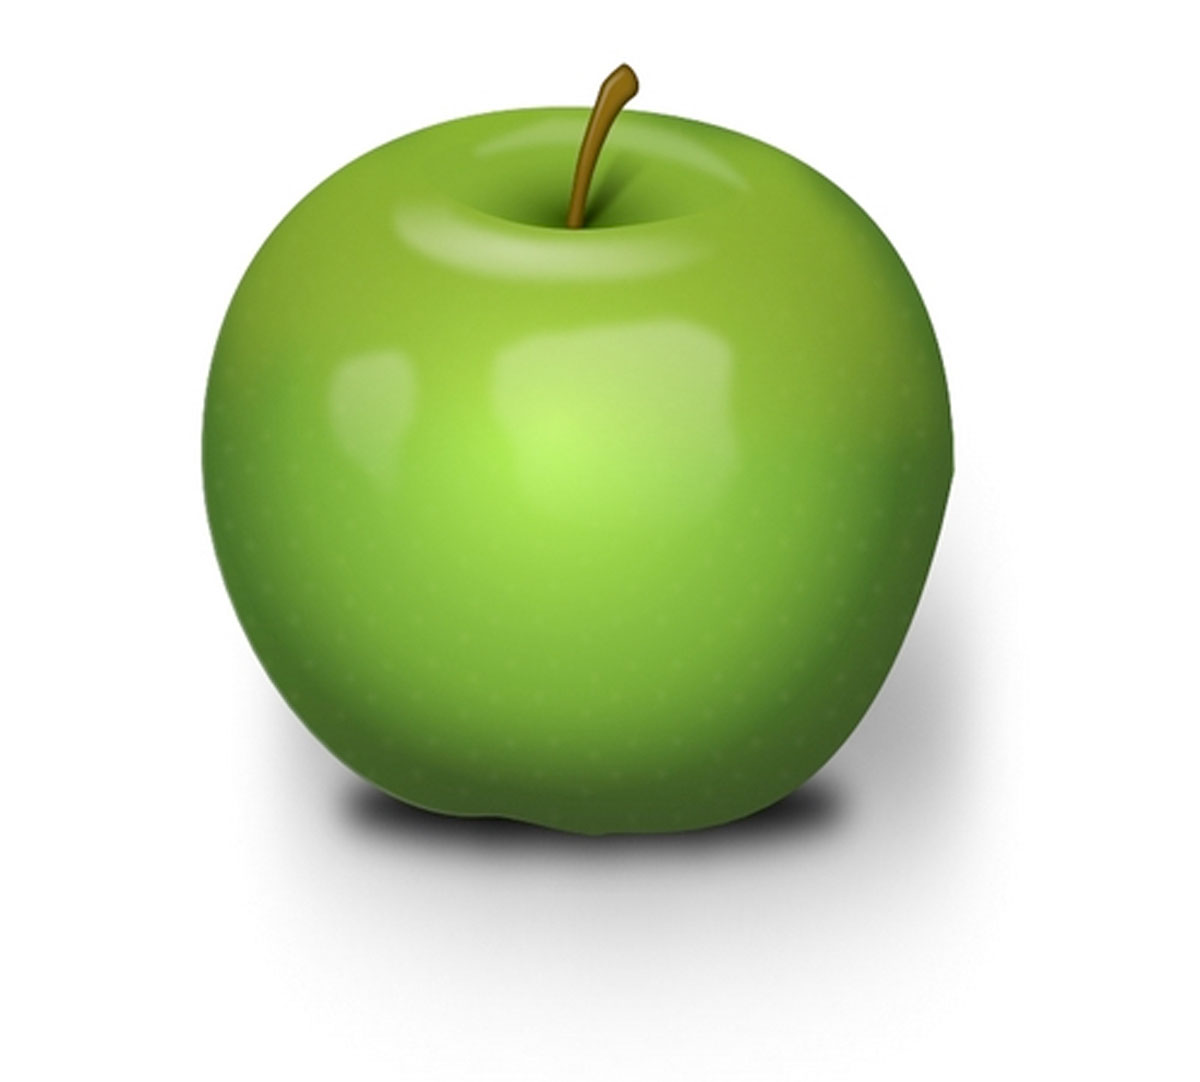 APPLE image - vector clip art online, royalty free & public domain